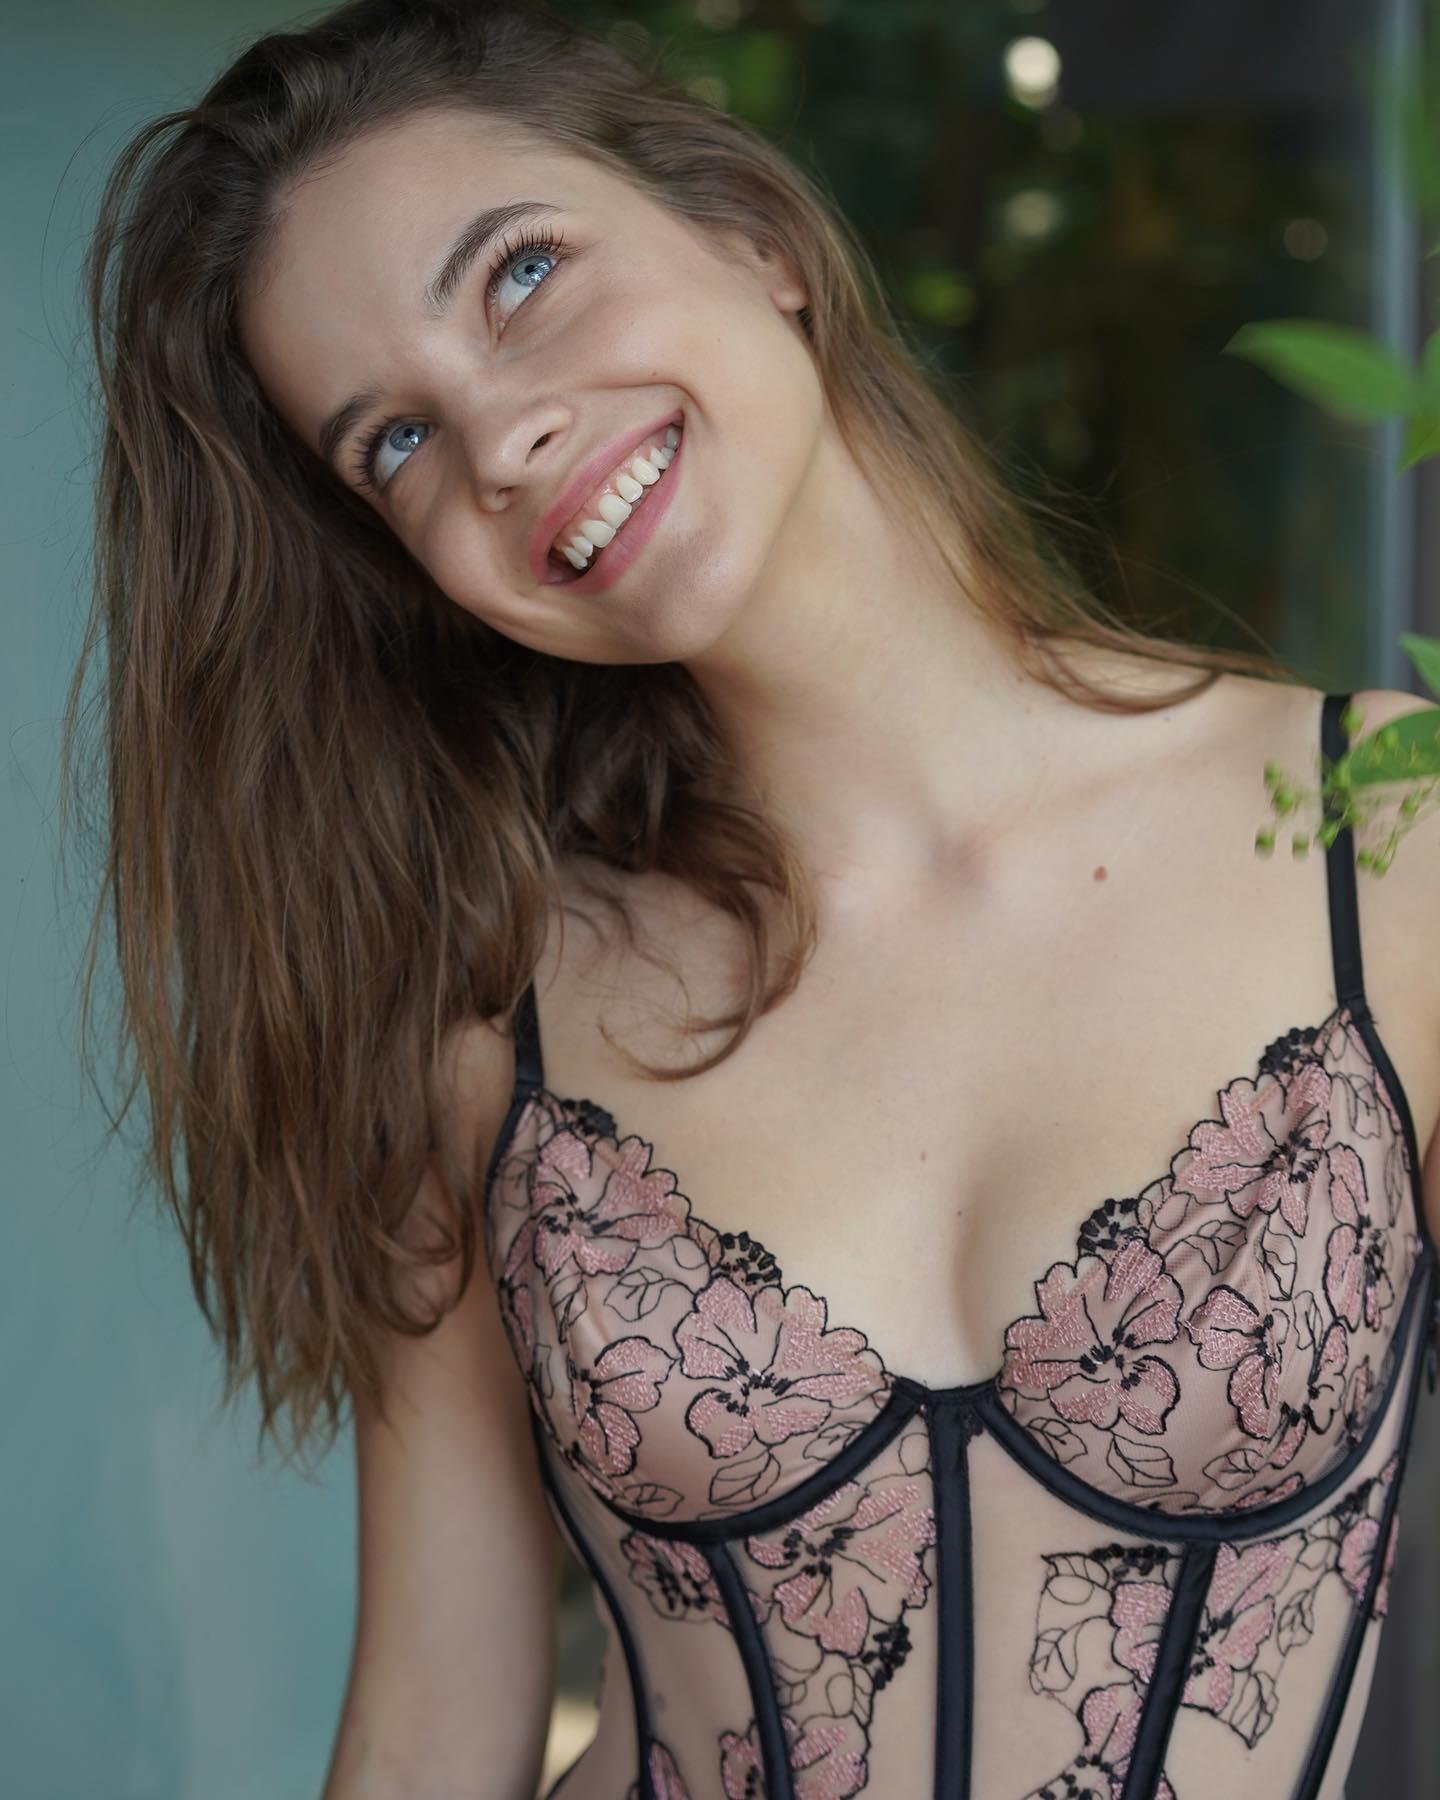 Barbara Palvin Beautiful In Lingerie